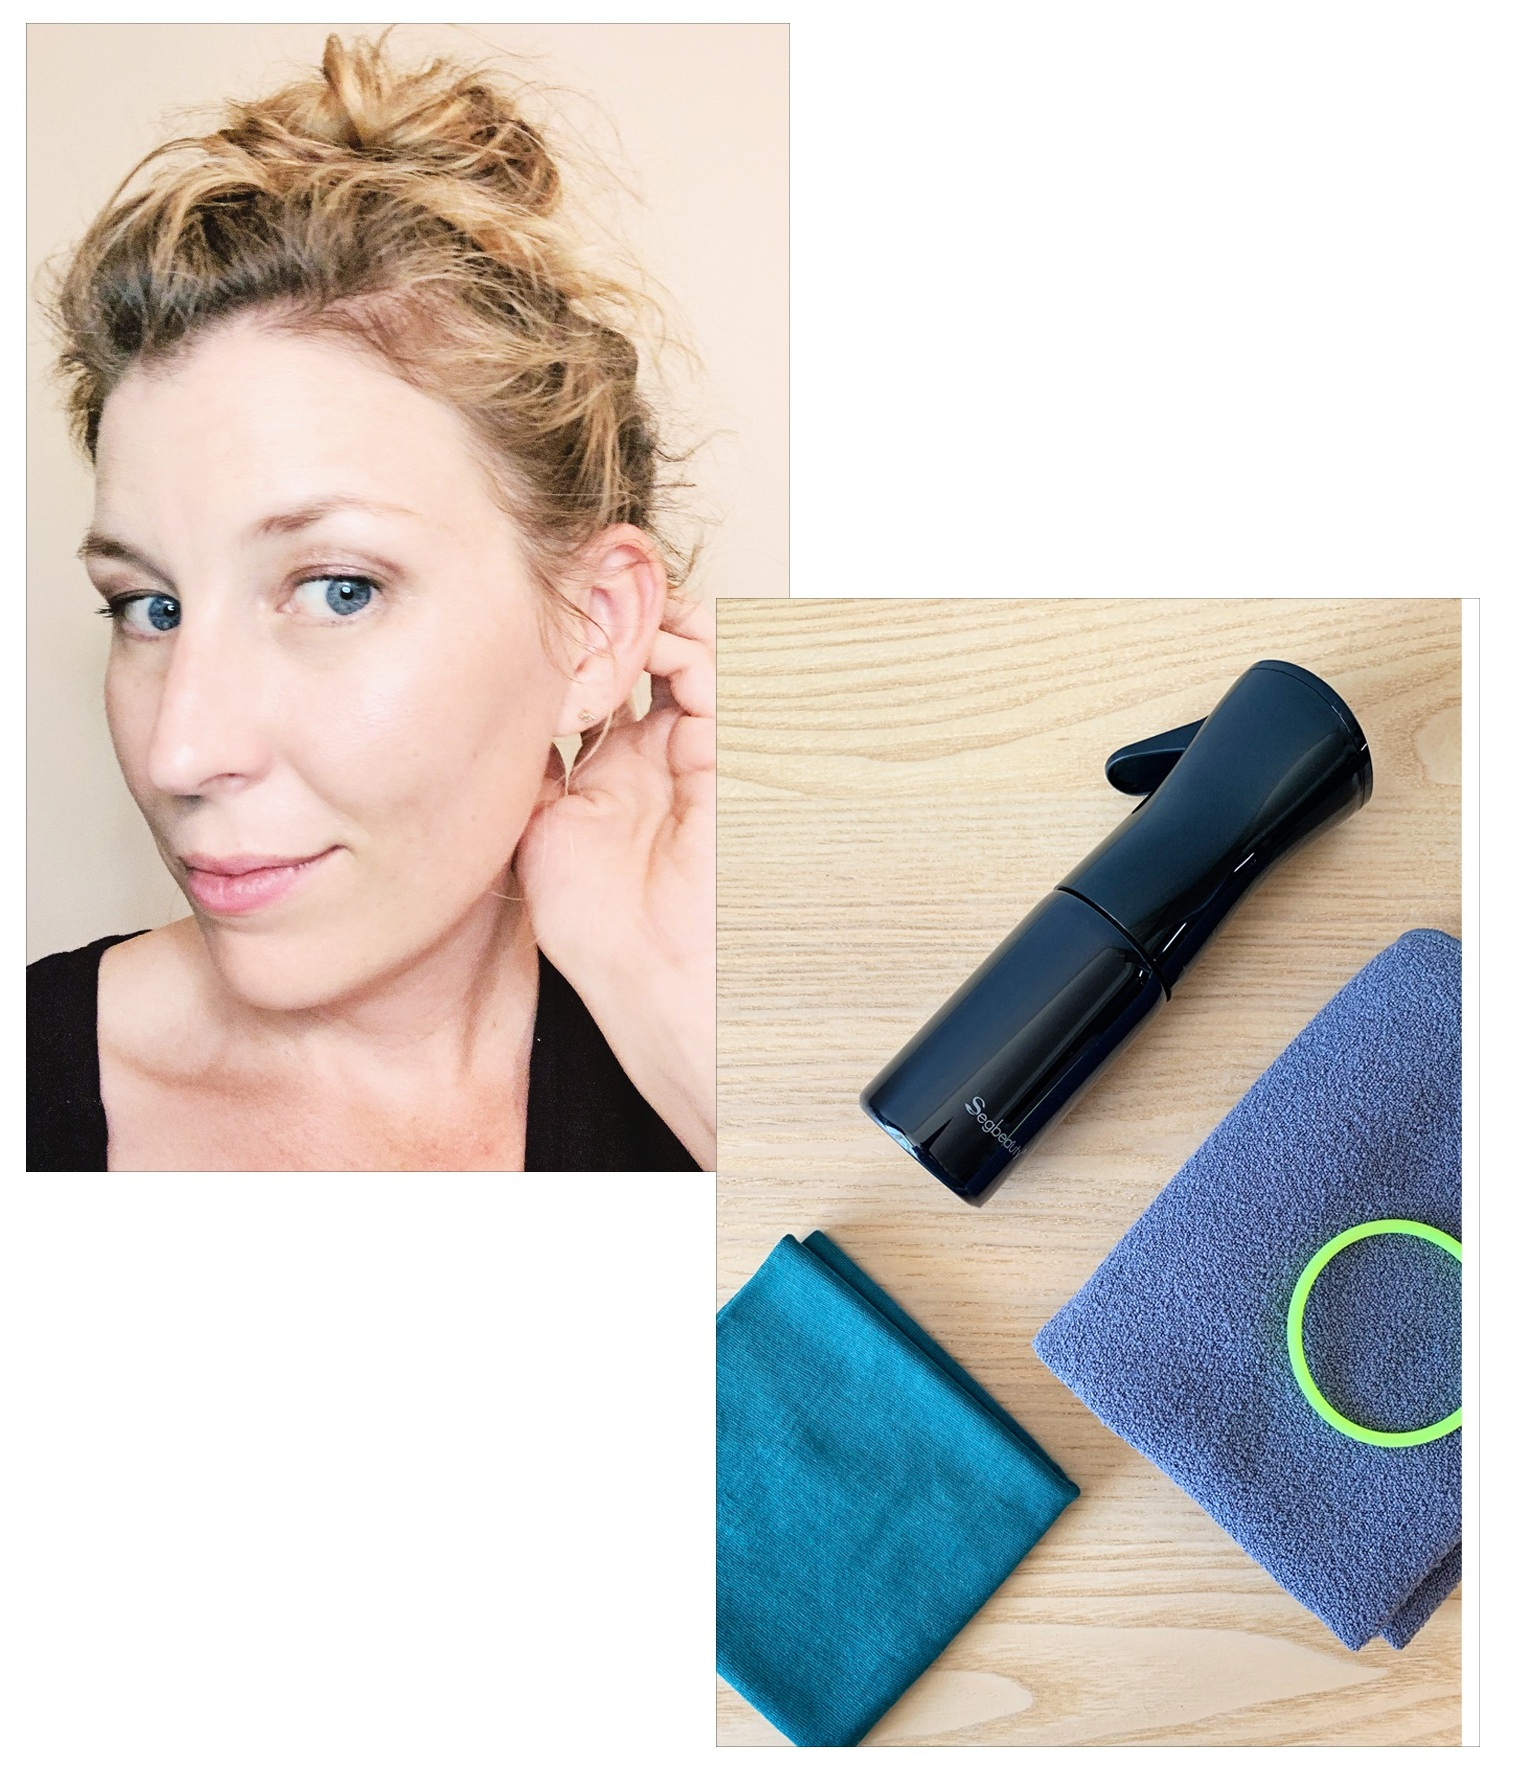 Halo of Baby Hairs |  Buff ,  Spray Bottle , and a Microfiber Towel